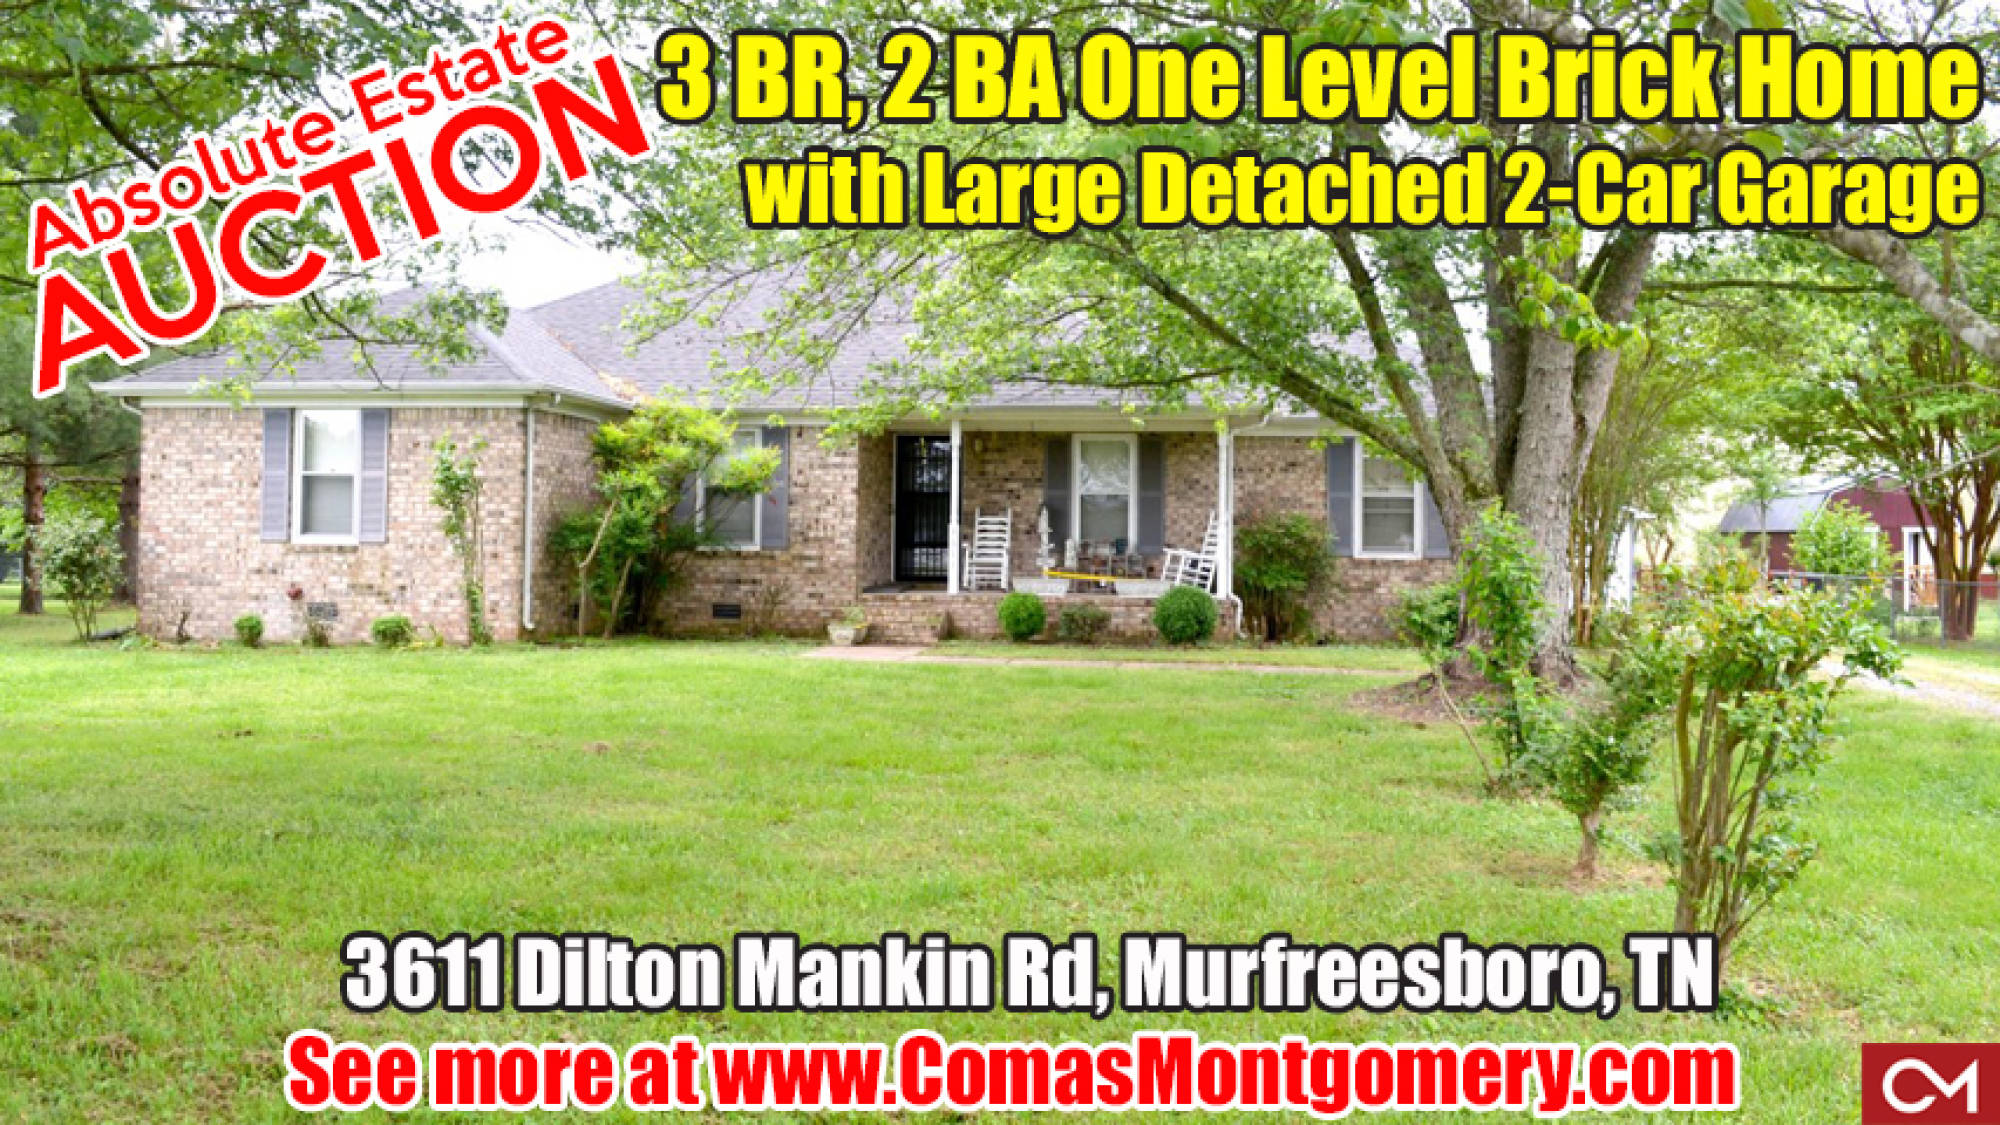 House, Home, Auction, Absolute, Real Estate, Murfreesboro, Garage, Comas, Montgomery, Dilton, Mankin, Merriman